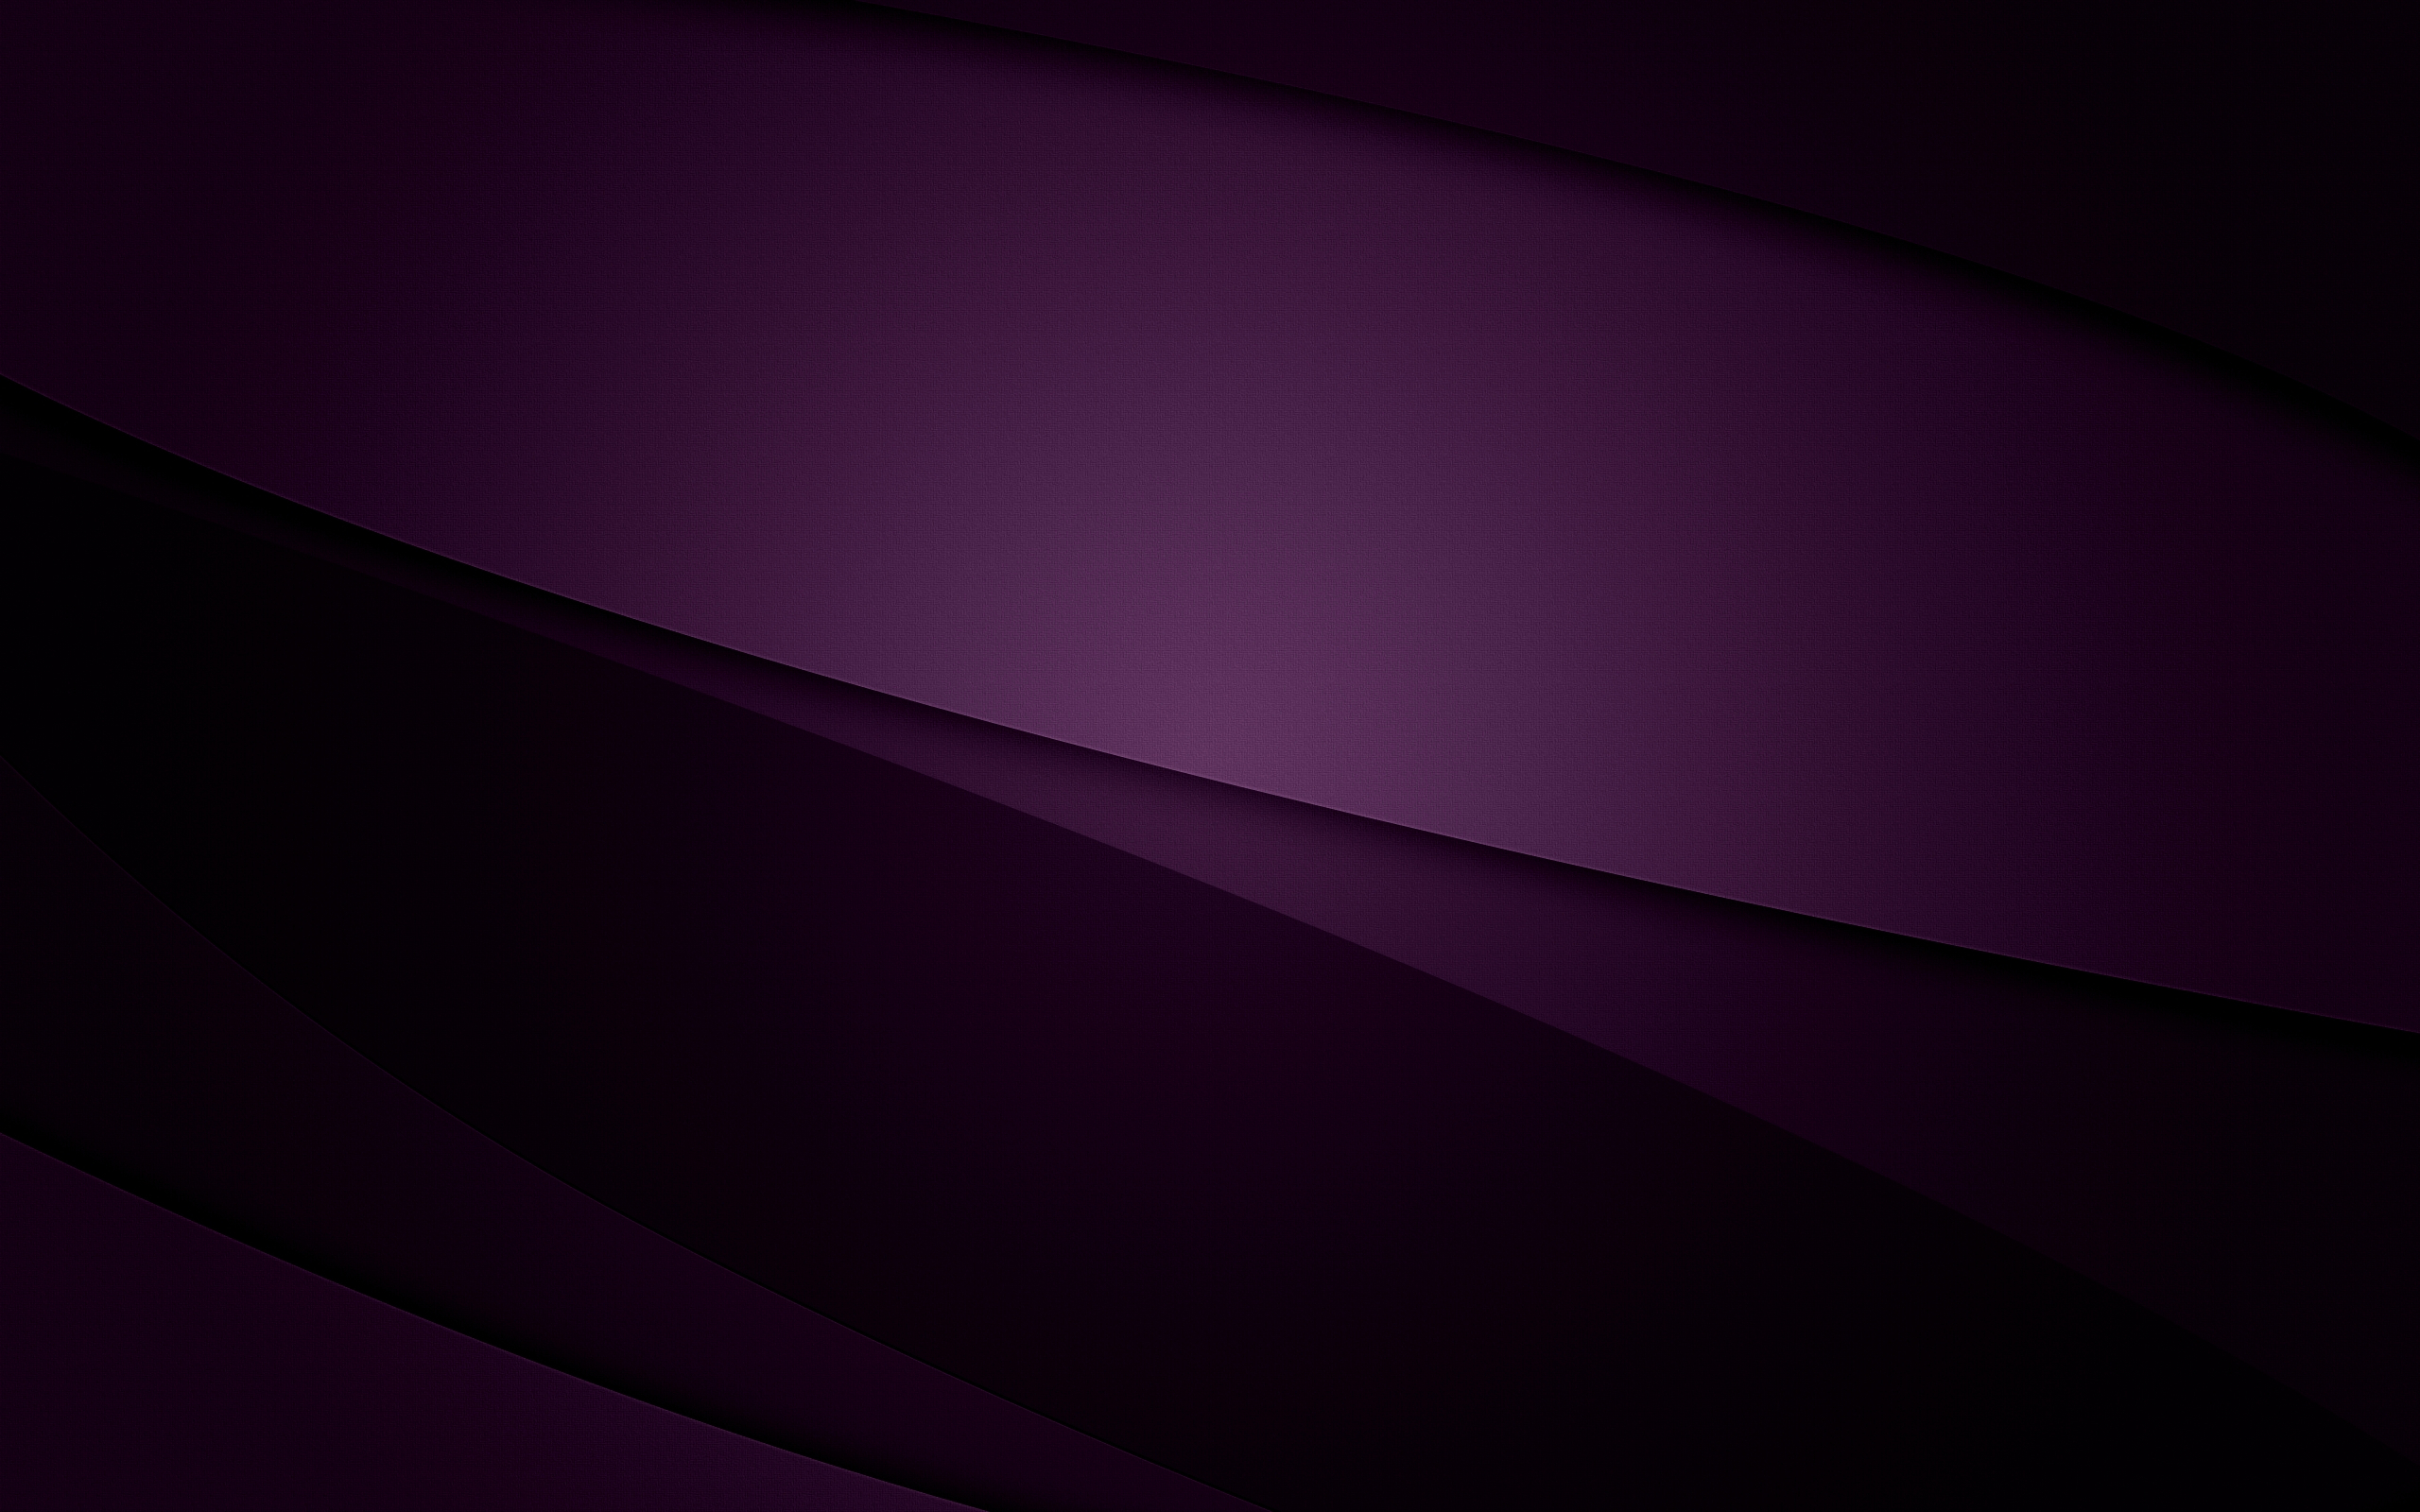 Wallpapers Abstrait Violet Maximumwall